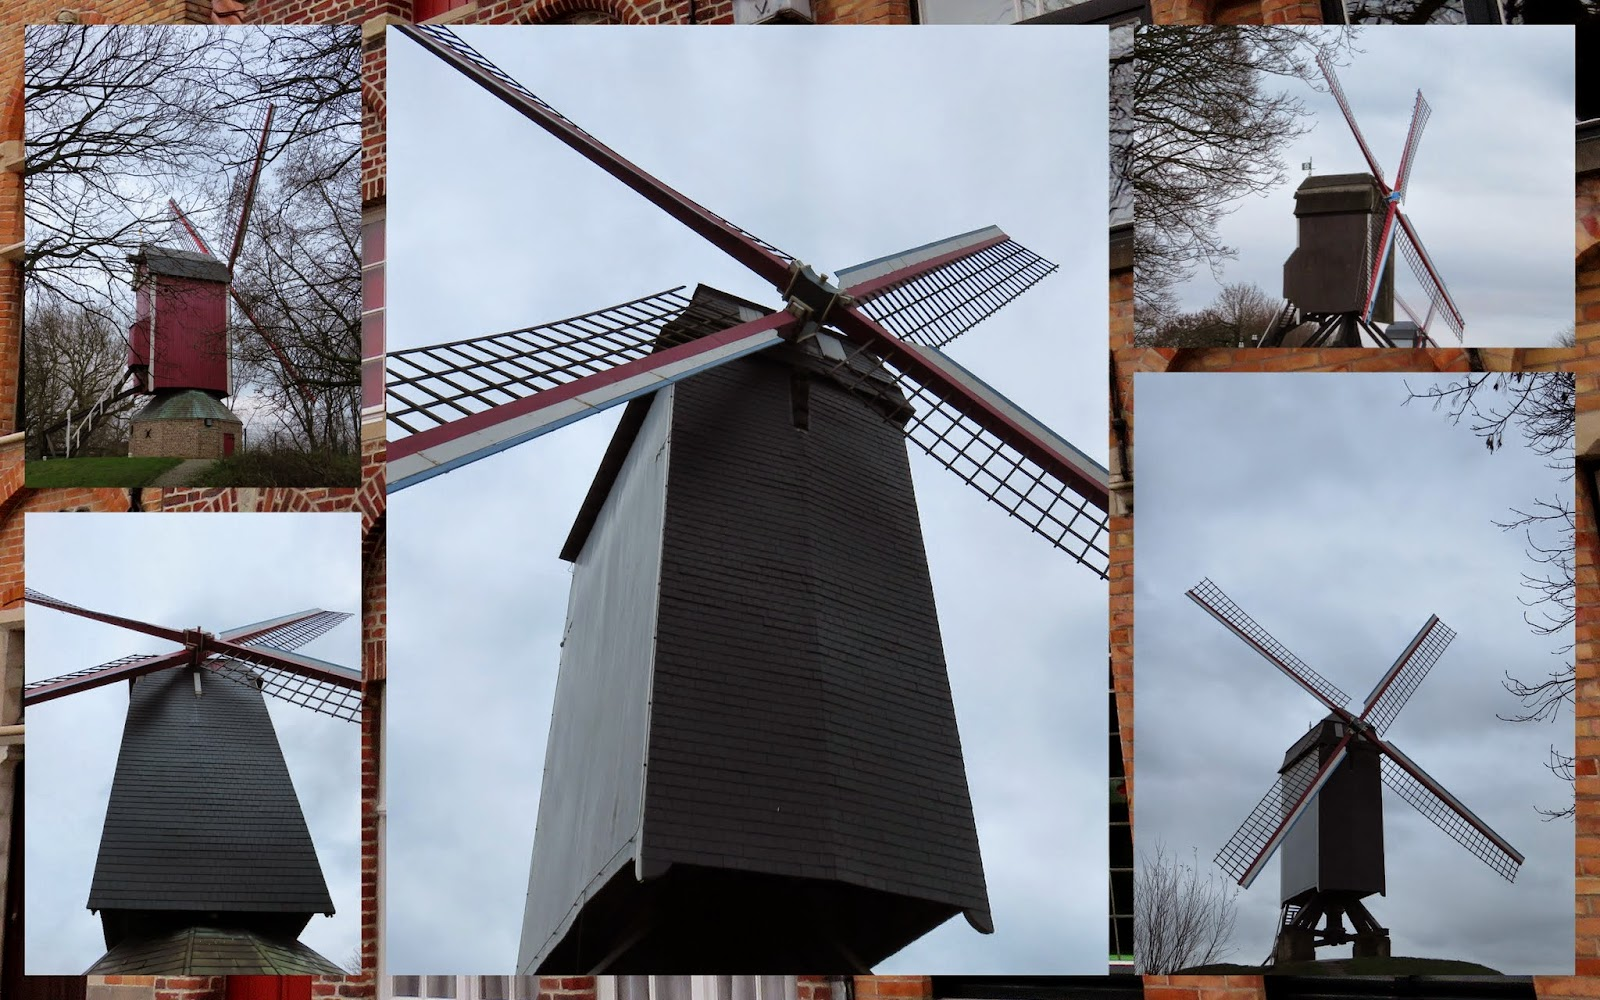 Windmills in Bruges, Belgium at Christmastime